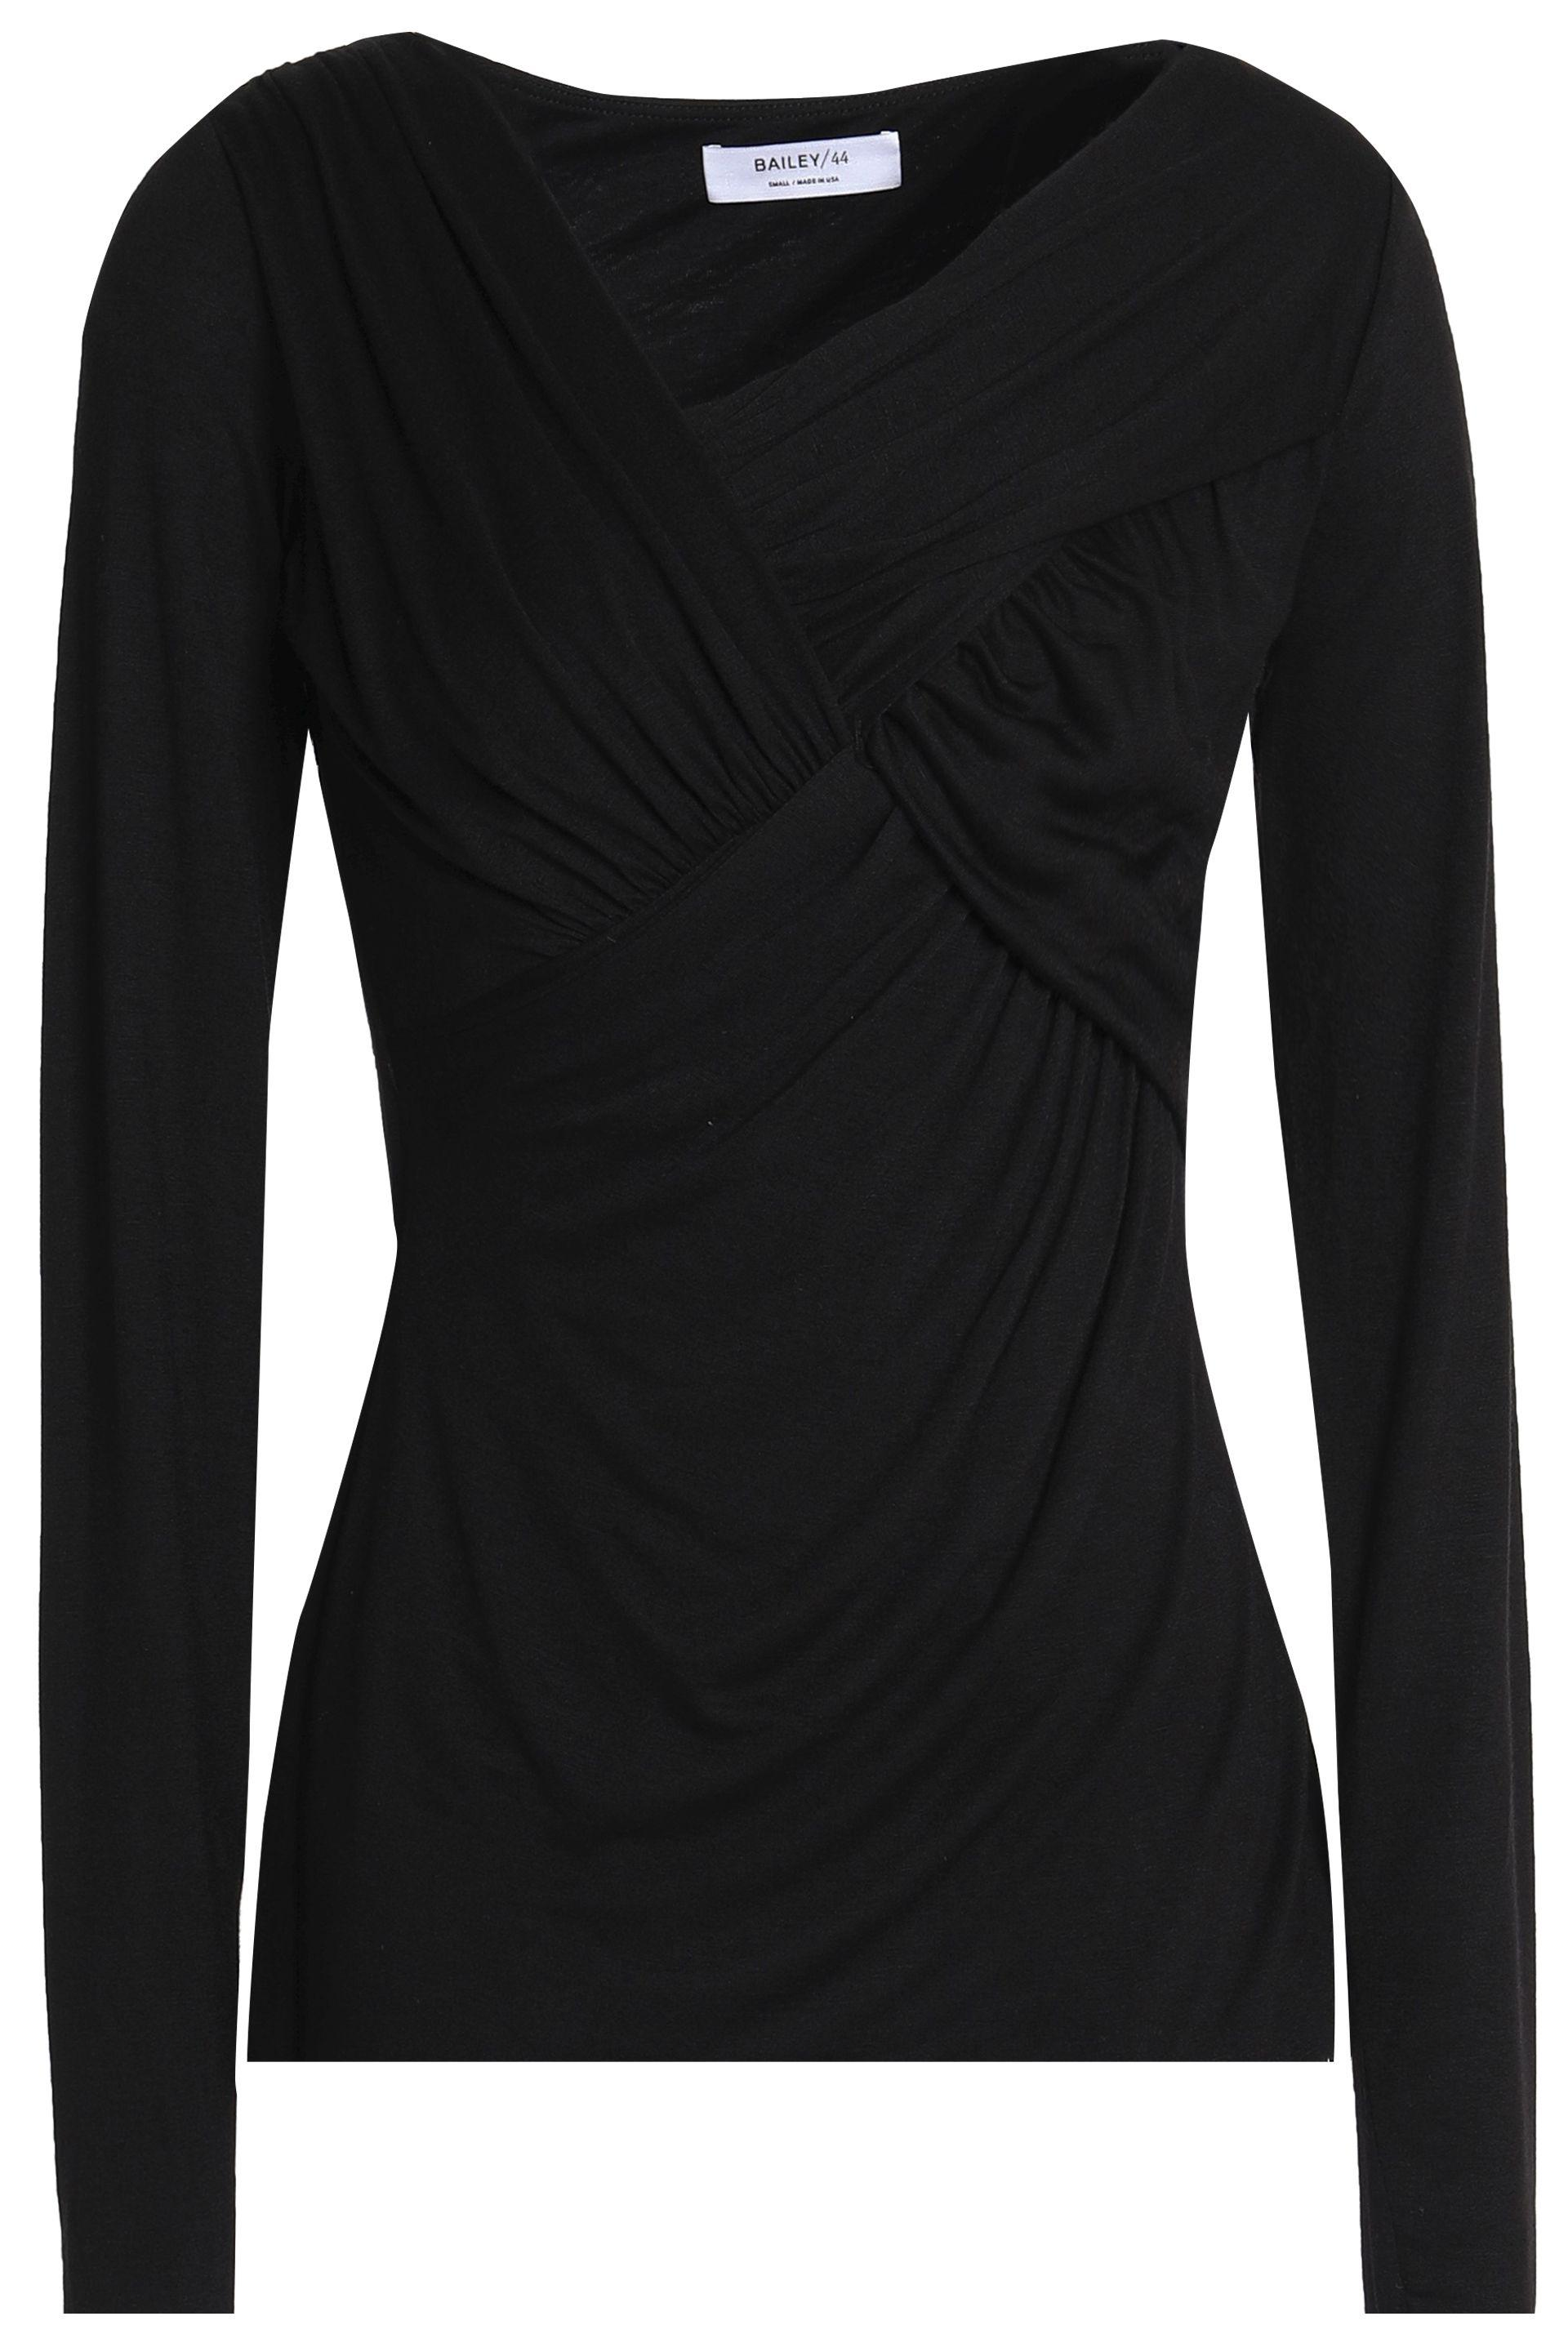 Bailey 44 Woman Twist-front Ruched Stretch-jersey Top Black Size M Bailey 44 Outlet 2018 New Discount From China Order Sale Online Reliable Online qyhsyNjY